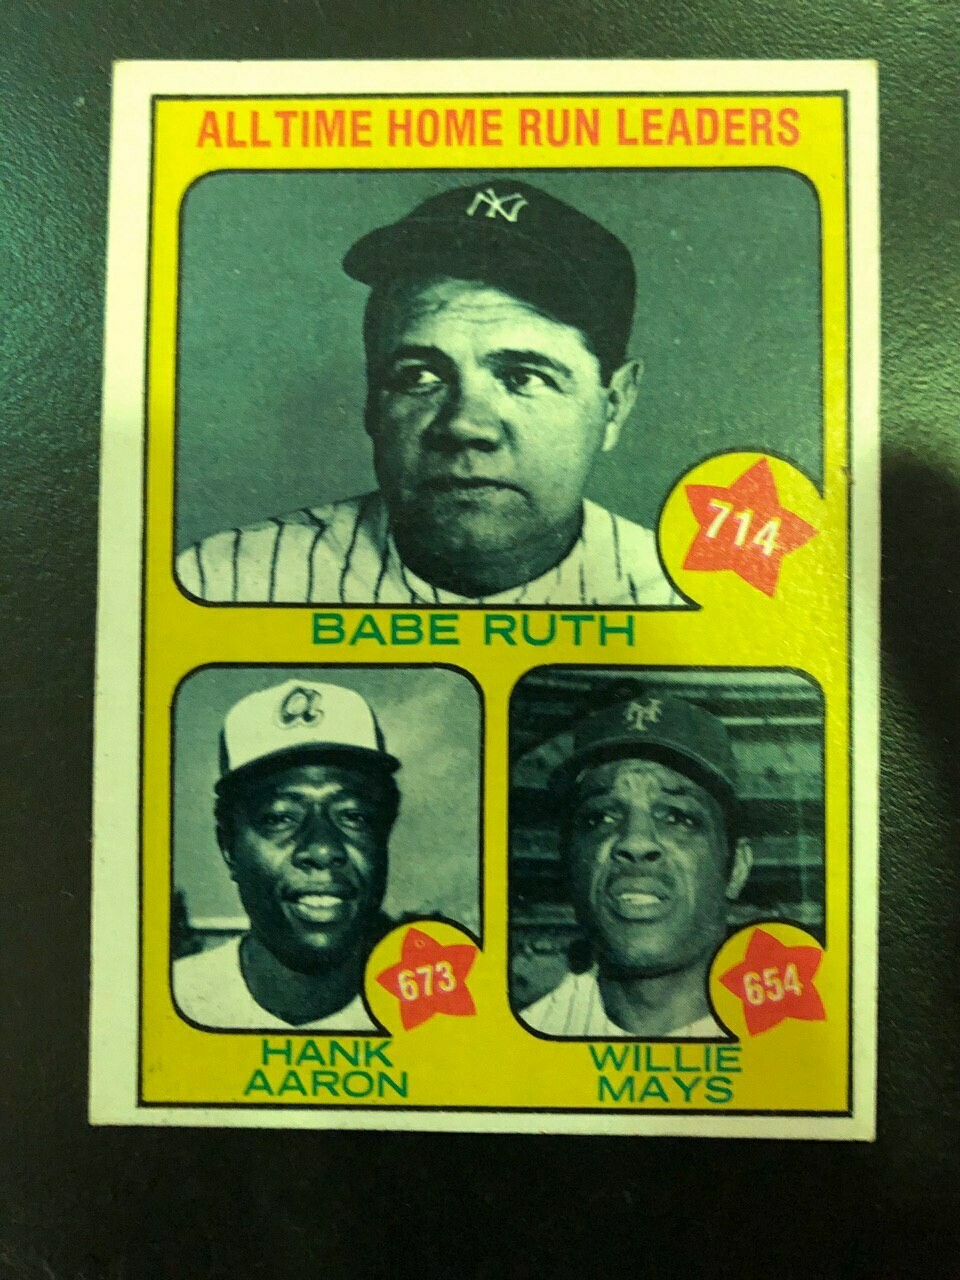 1973 Topps #1 All Time Home Run Leaders Ruth/Aaron/Mays List $60, Sell $45